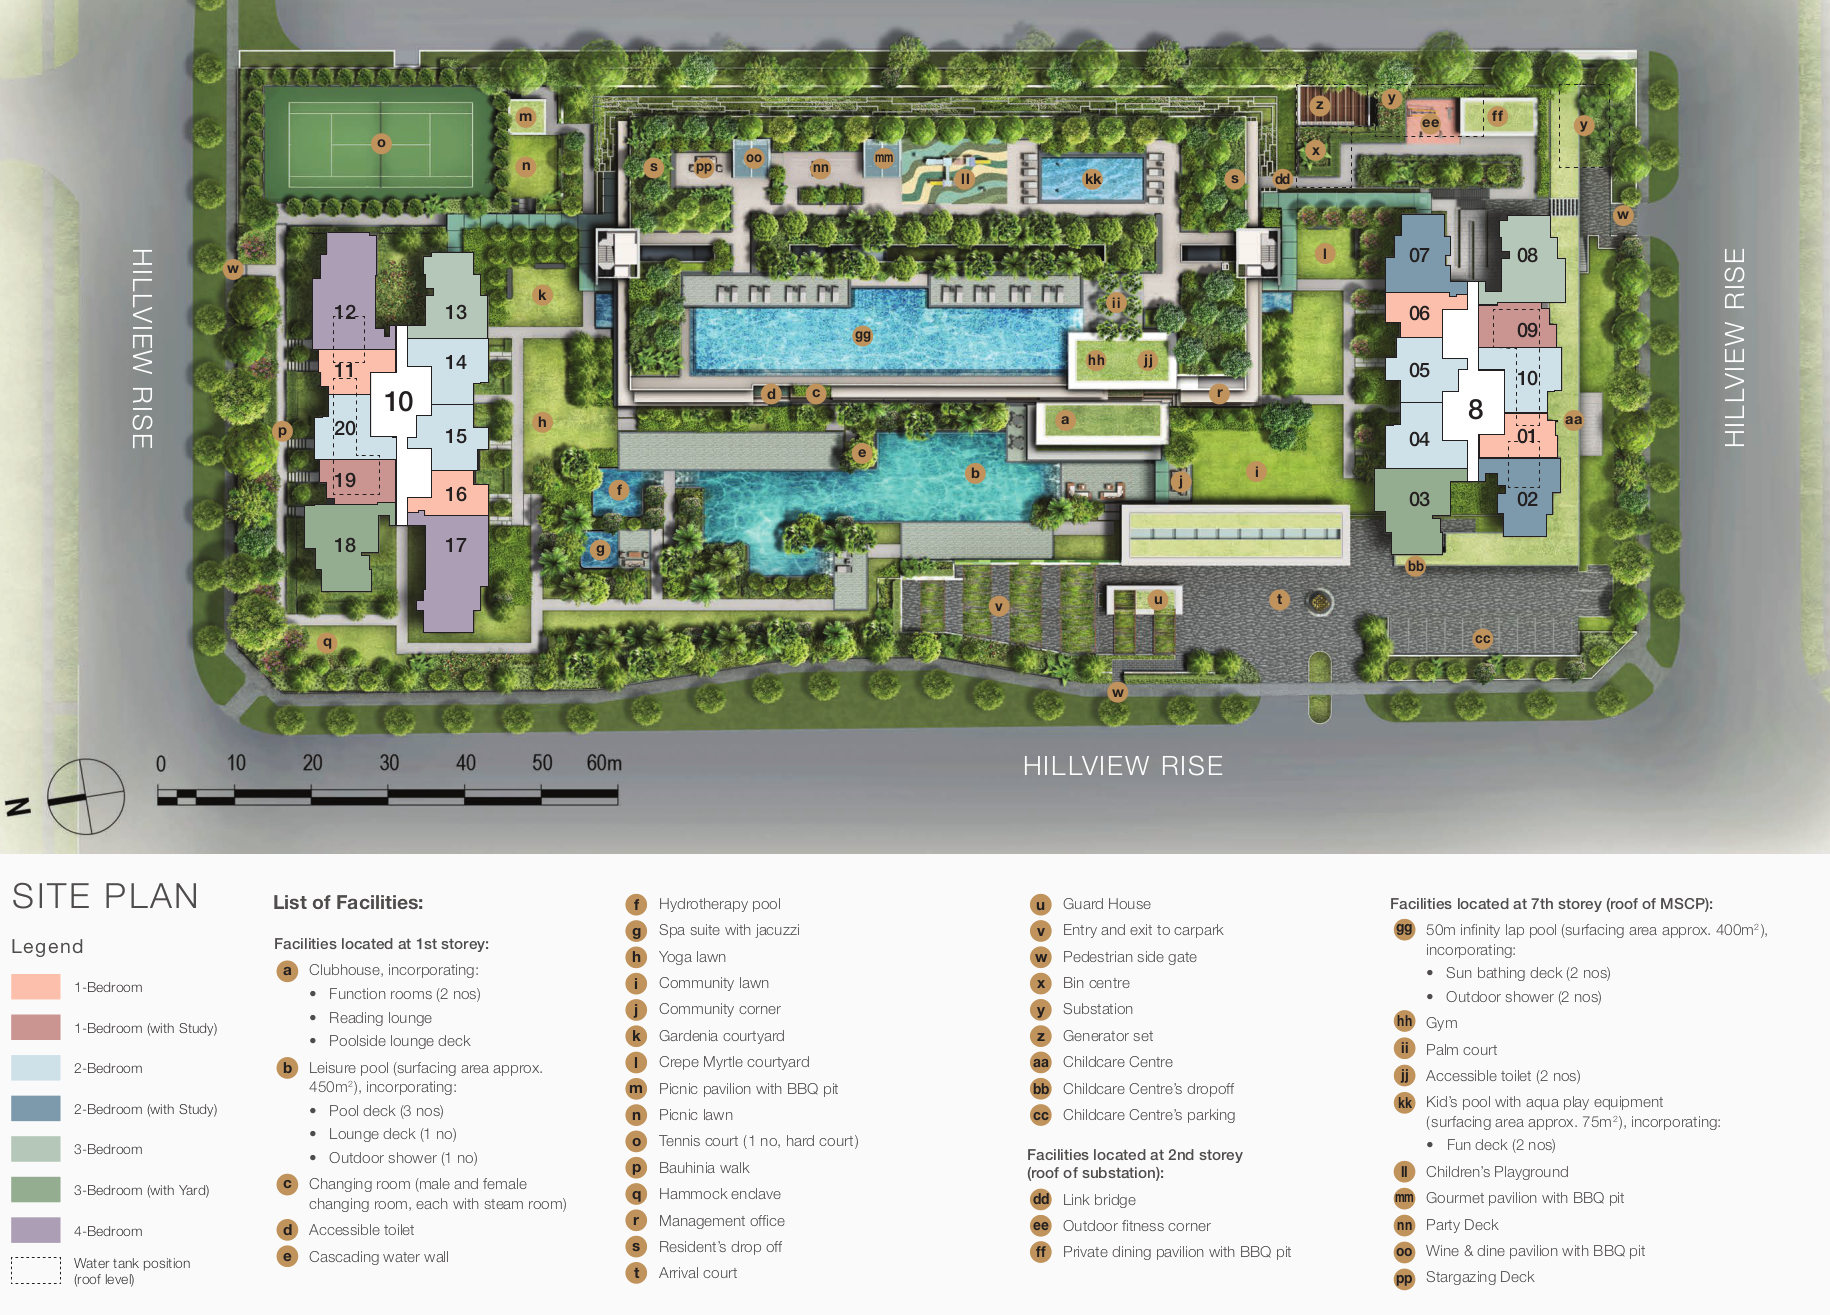 The Midwood Site Plan Layout